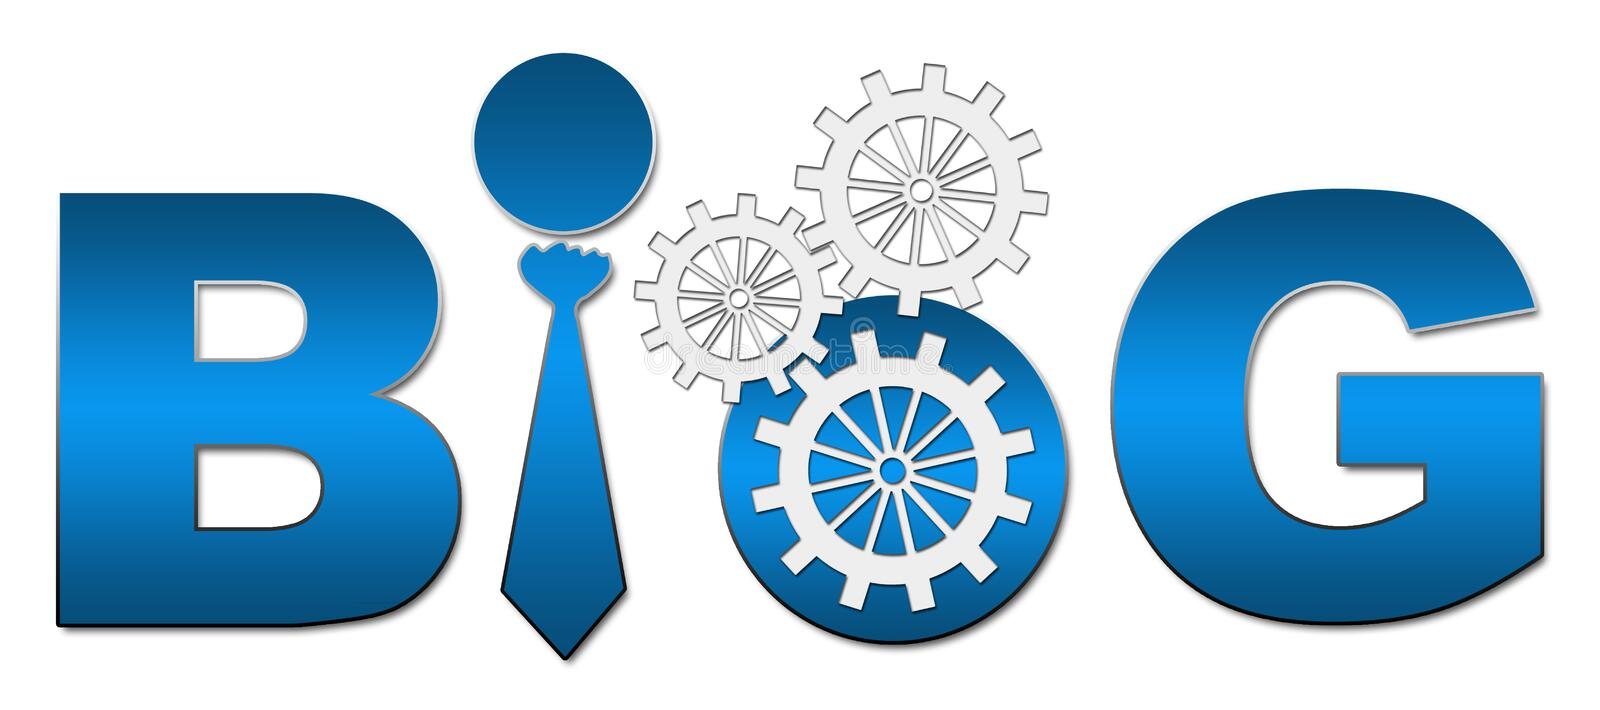 Blog Text With Gears royalty free illustration